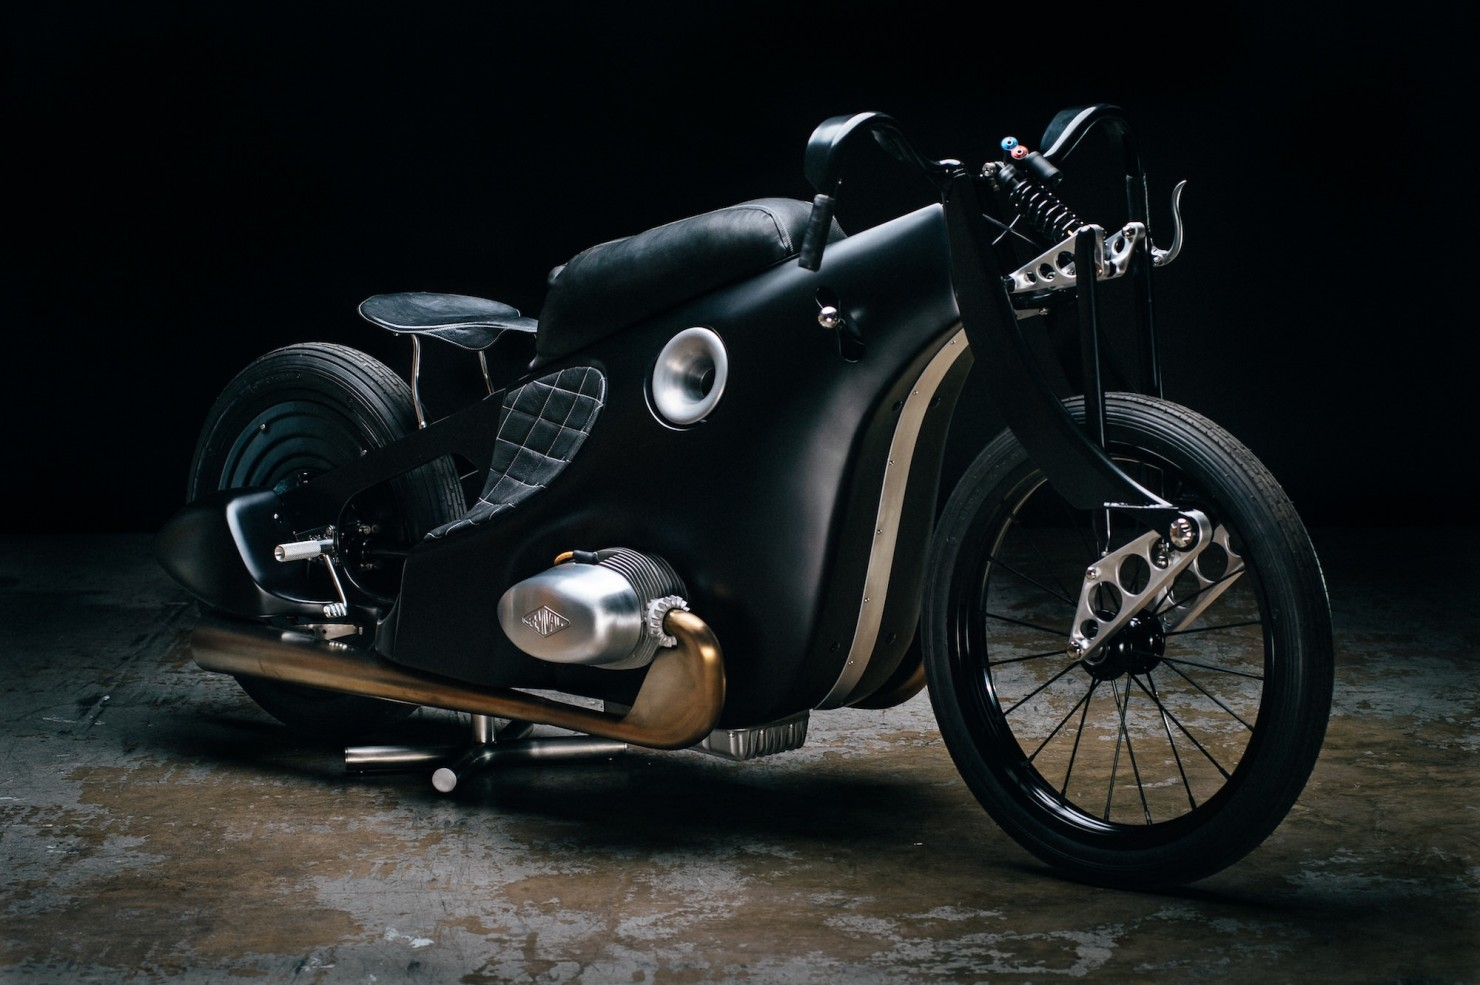 Custom-BMW-Motorcycle-4